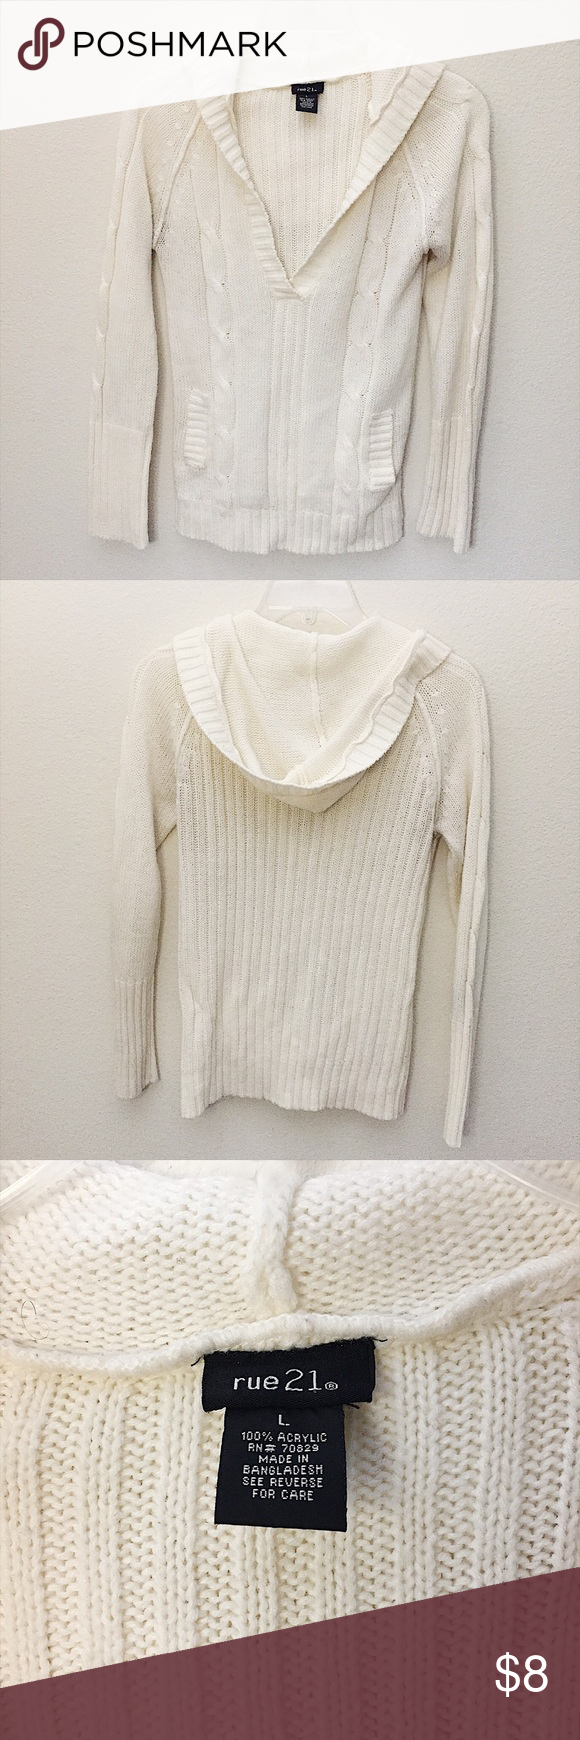 Rue 21 Hooded V-Neck Sweater Comfy and cozy! Great for casual wear ...